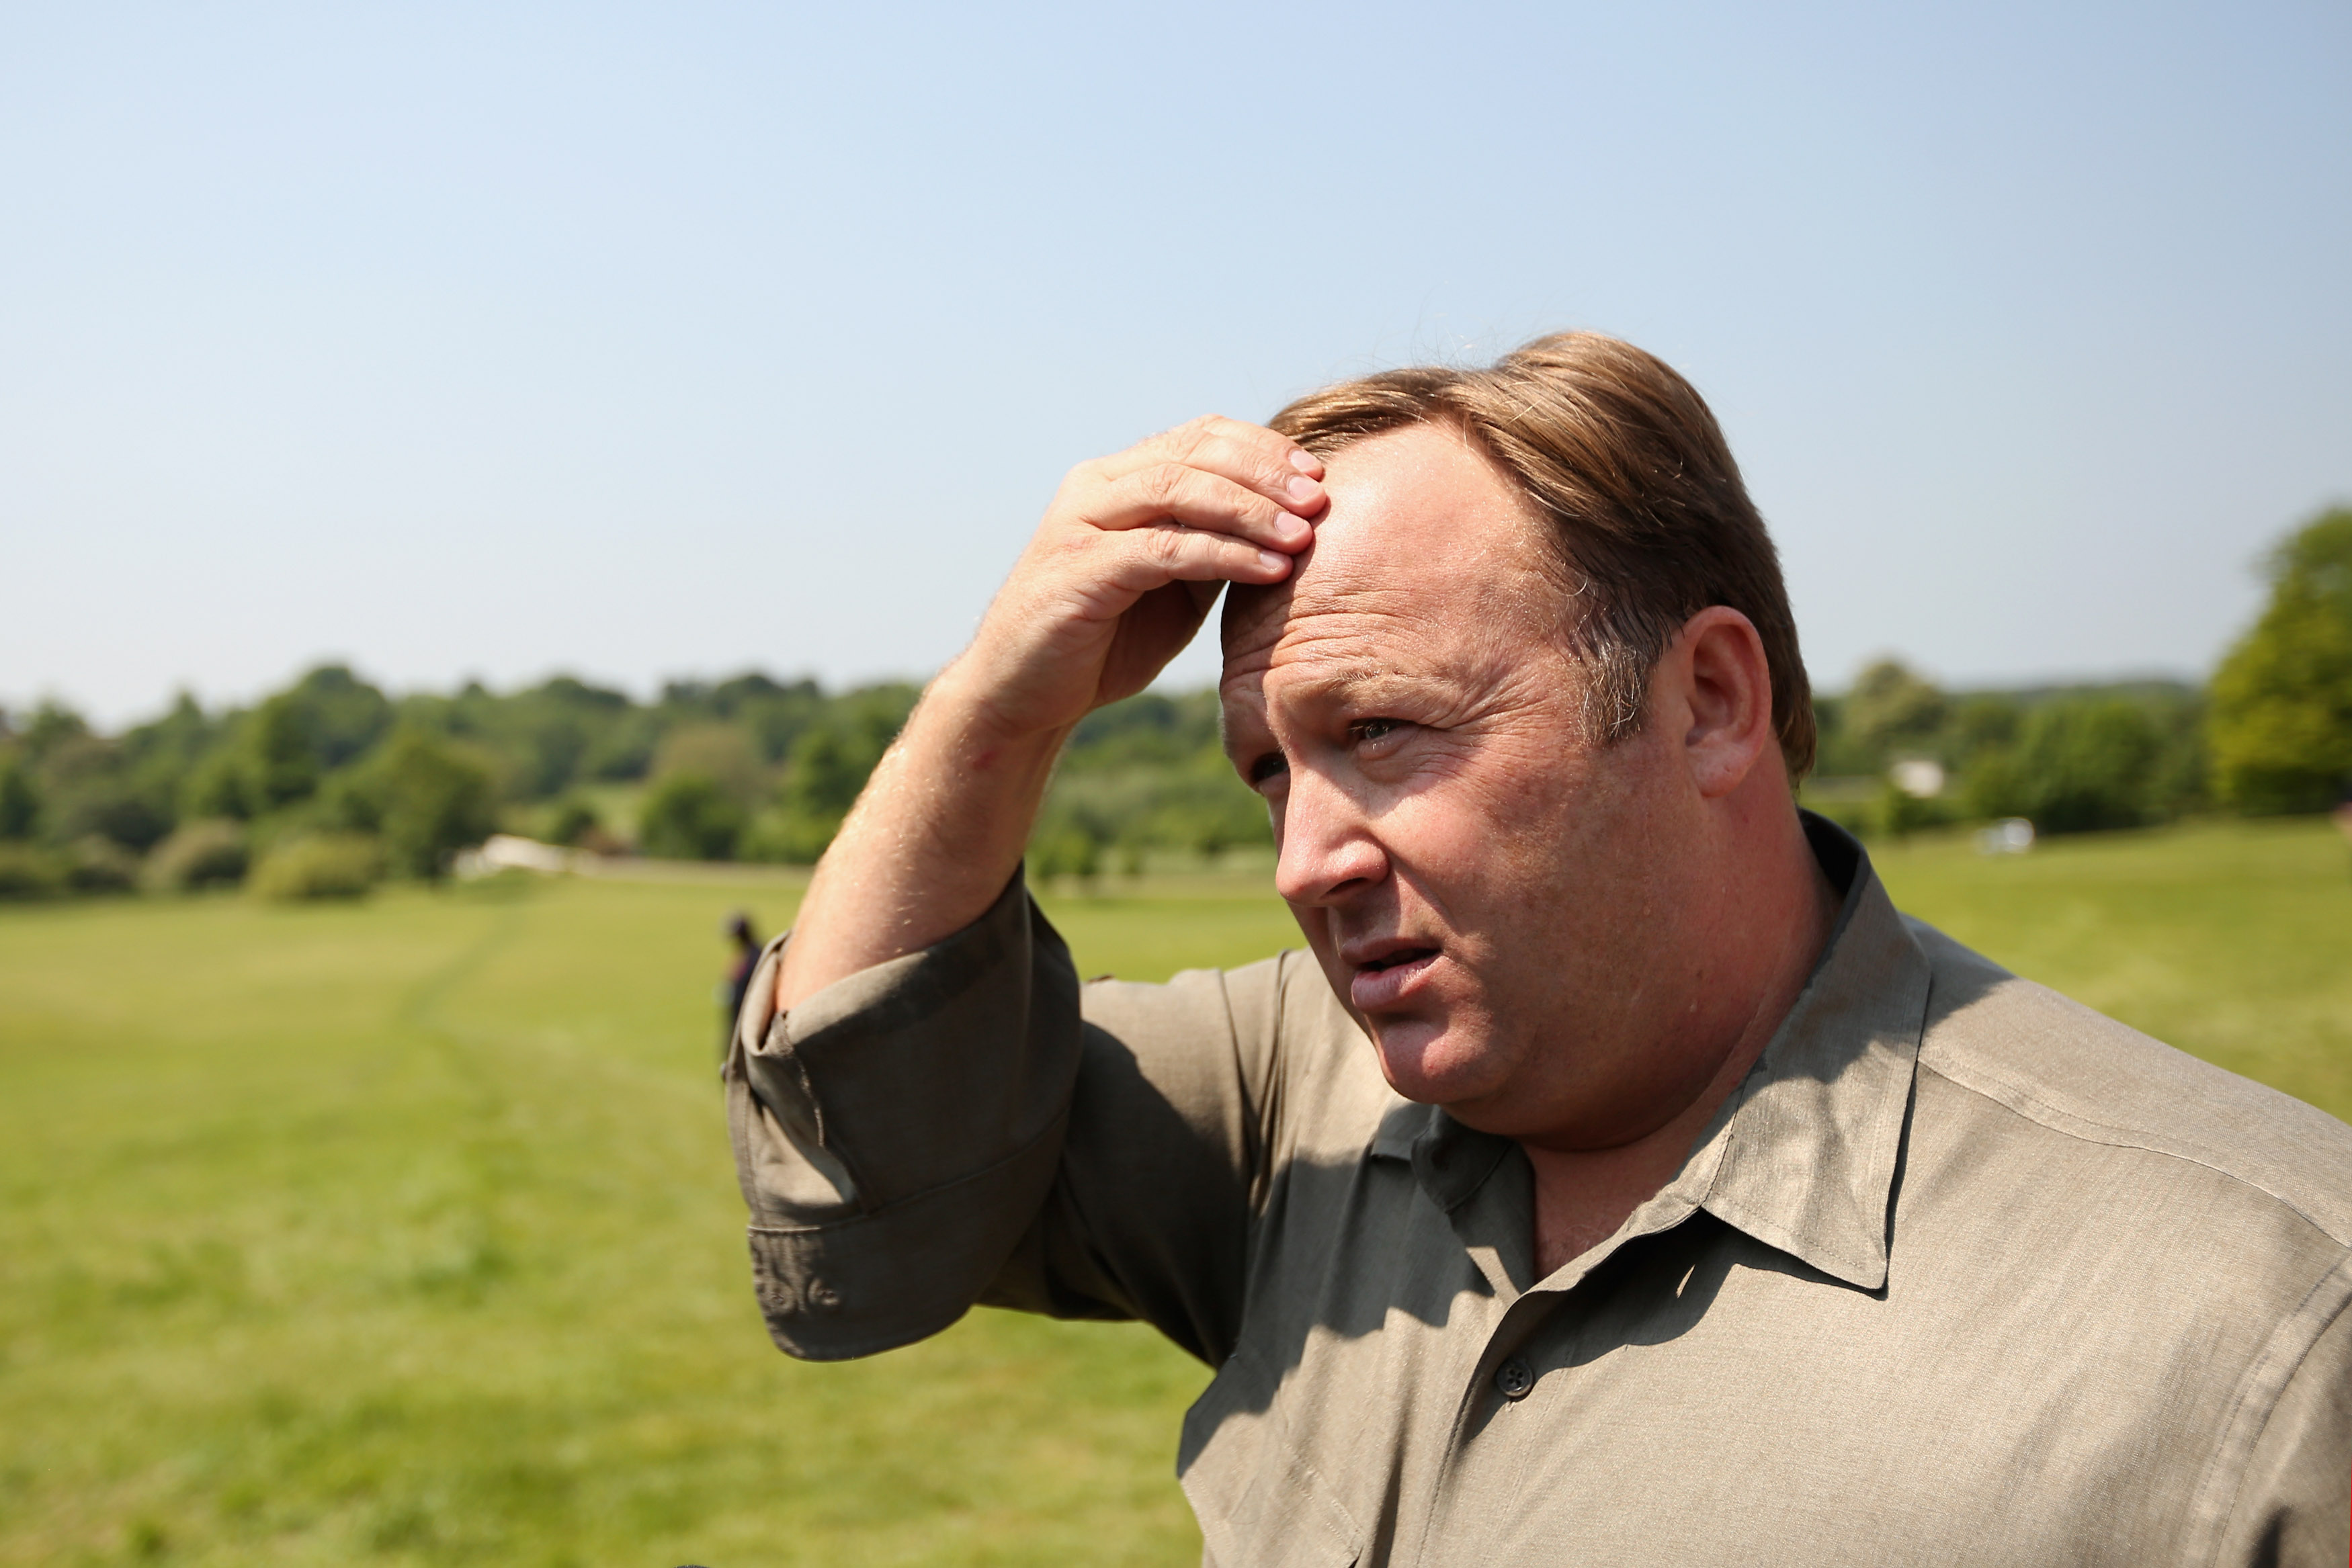 Alex Jones, an American radio host, author and conspiracy theorist, addresses media and protesters in the protester encampment outside The Grove hotel, which is hosting the annual Bilderberg conference, on June 6, 2013 in Watford, England.